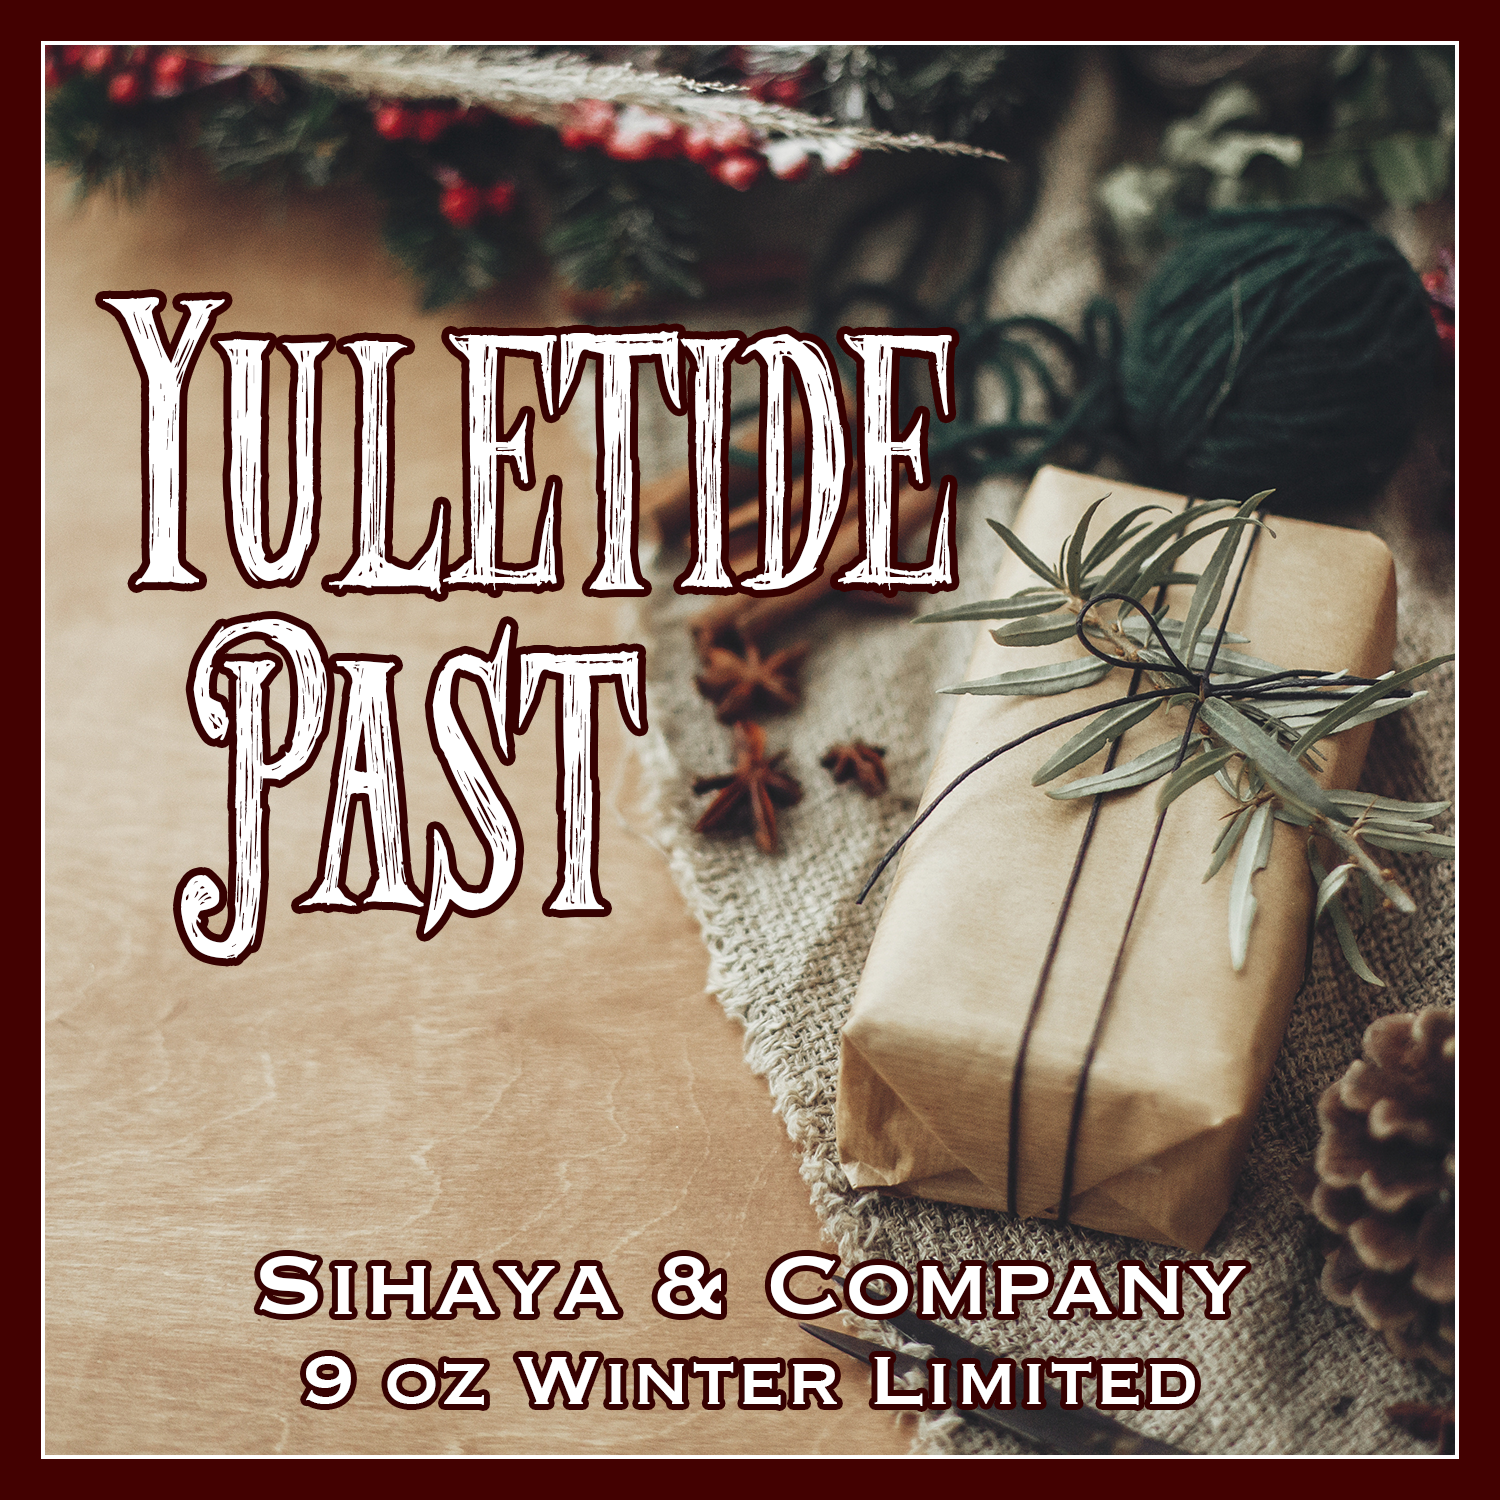 Winter Tiered Limited: YULETIDE PAST